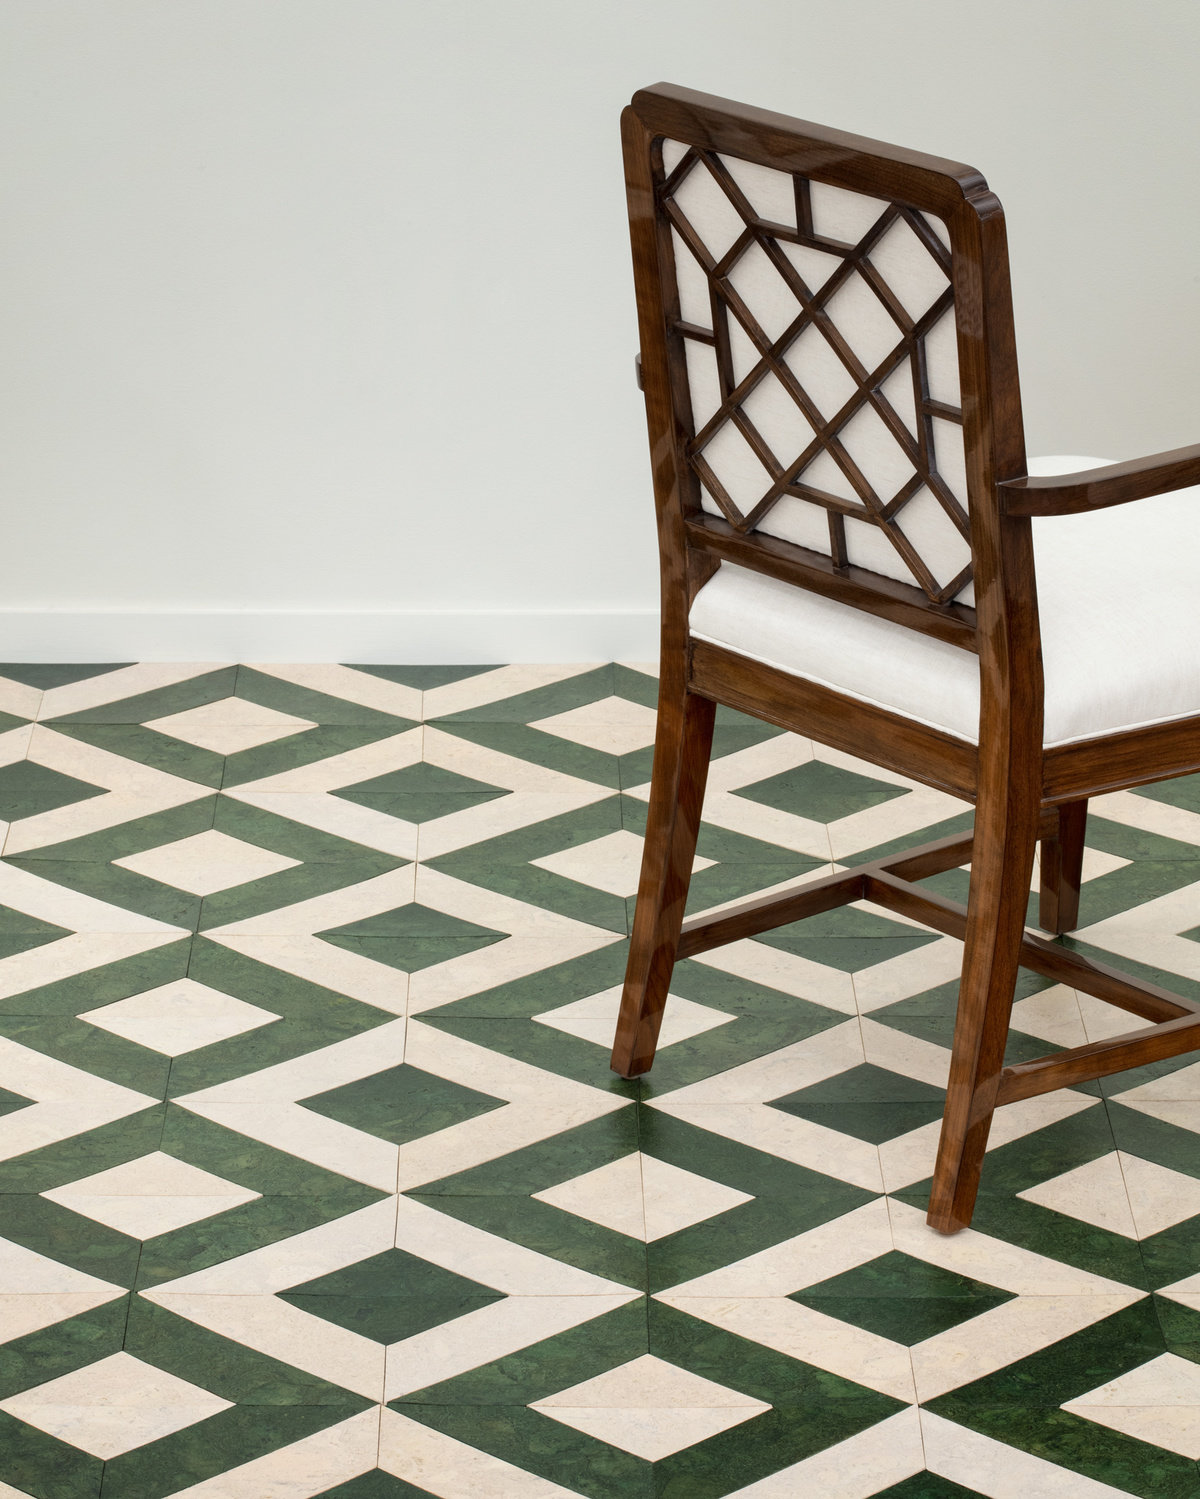 Alexa hampton belluno floor tiles 2 1200 xxx q85